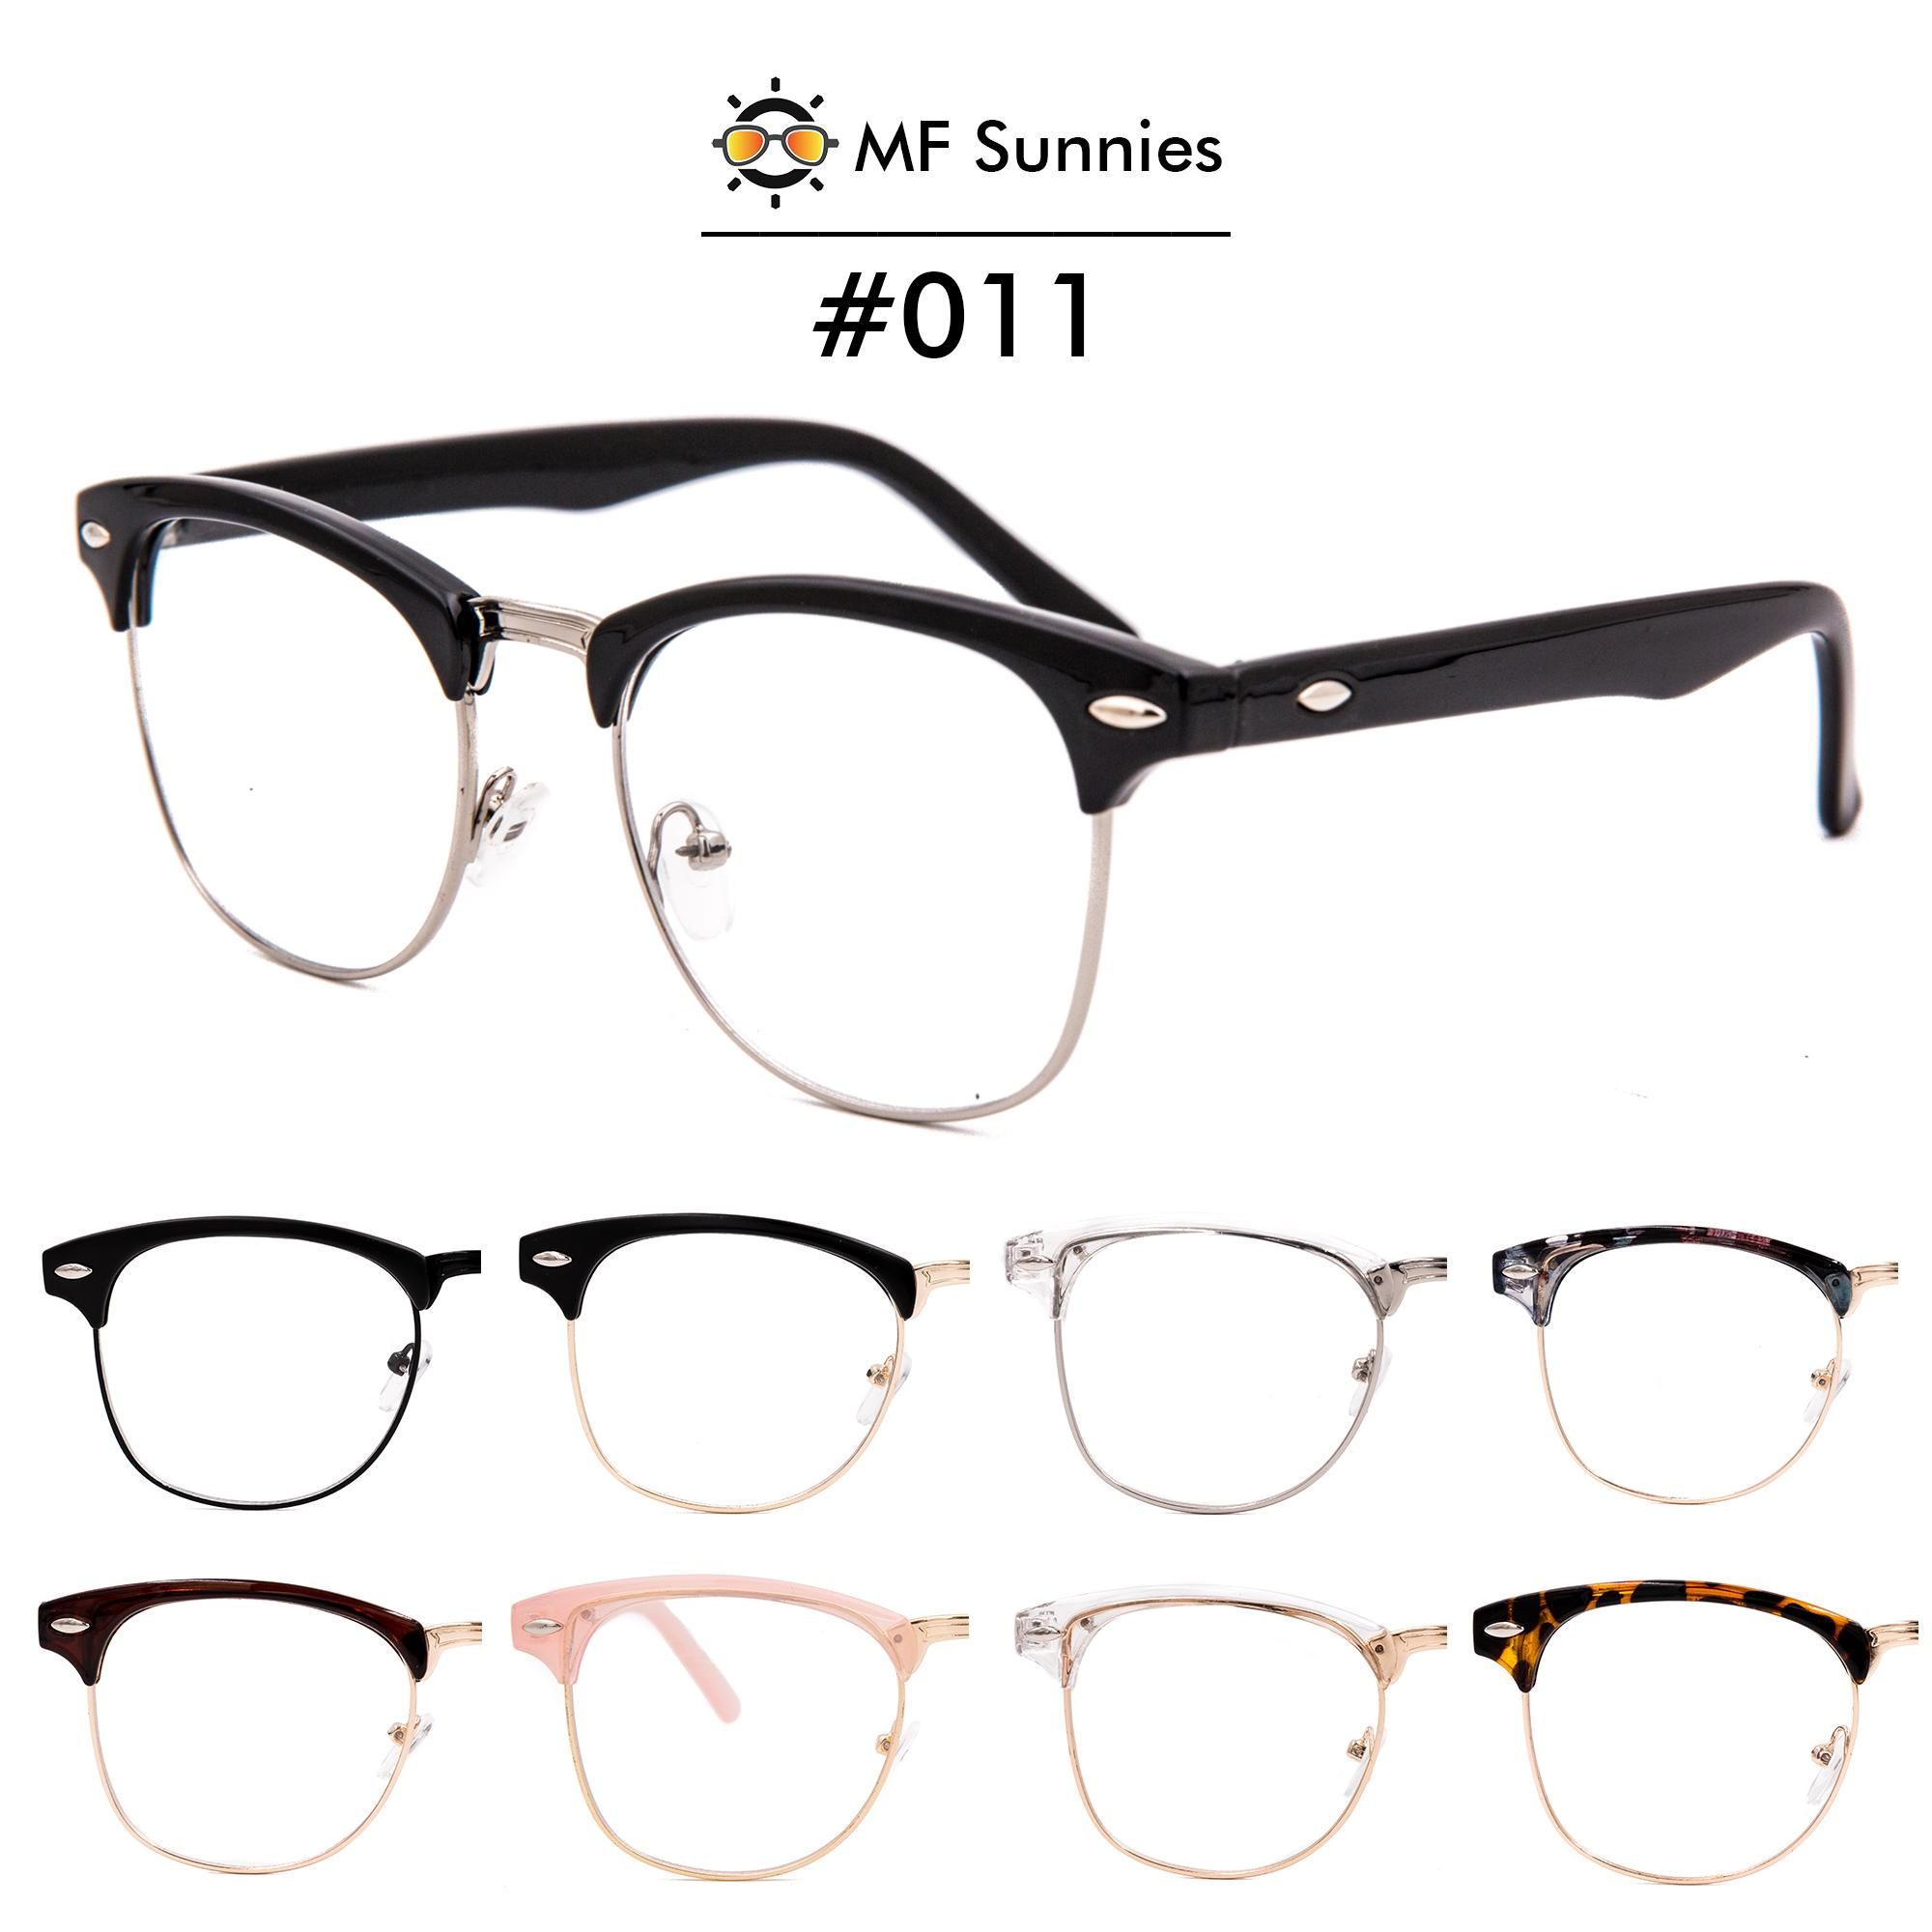 b72151709f9e MFSunnies Clubmaster Computer Anti Radiation Blue light Classic Metal  Hinges High quality acetate frame